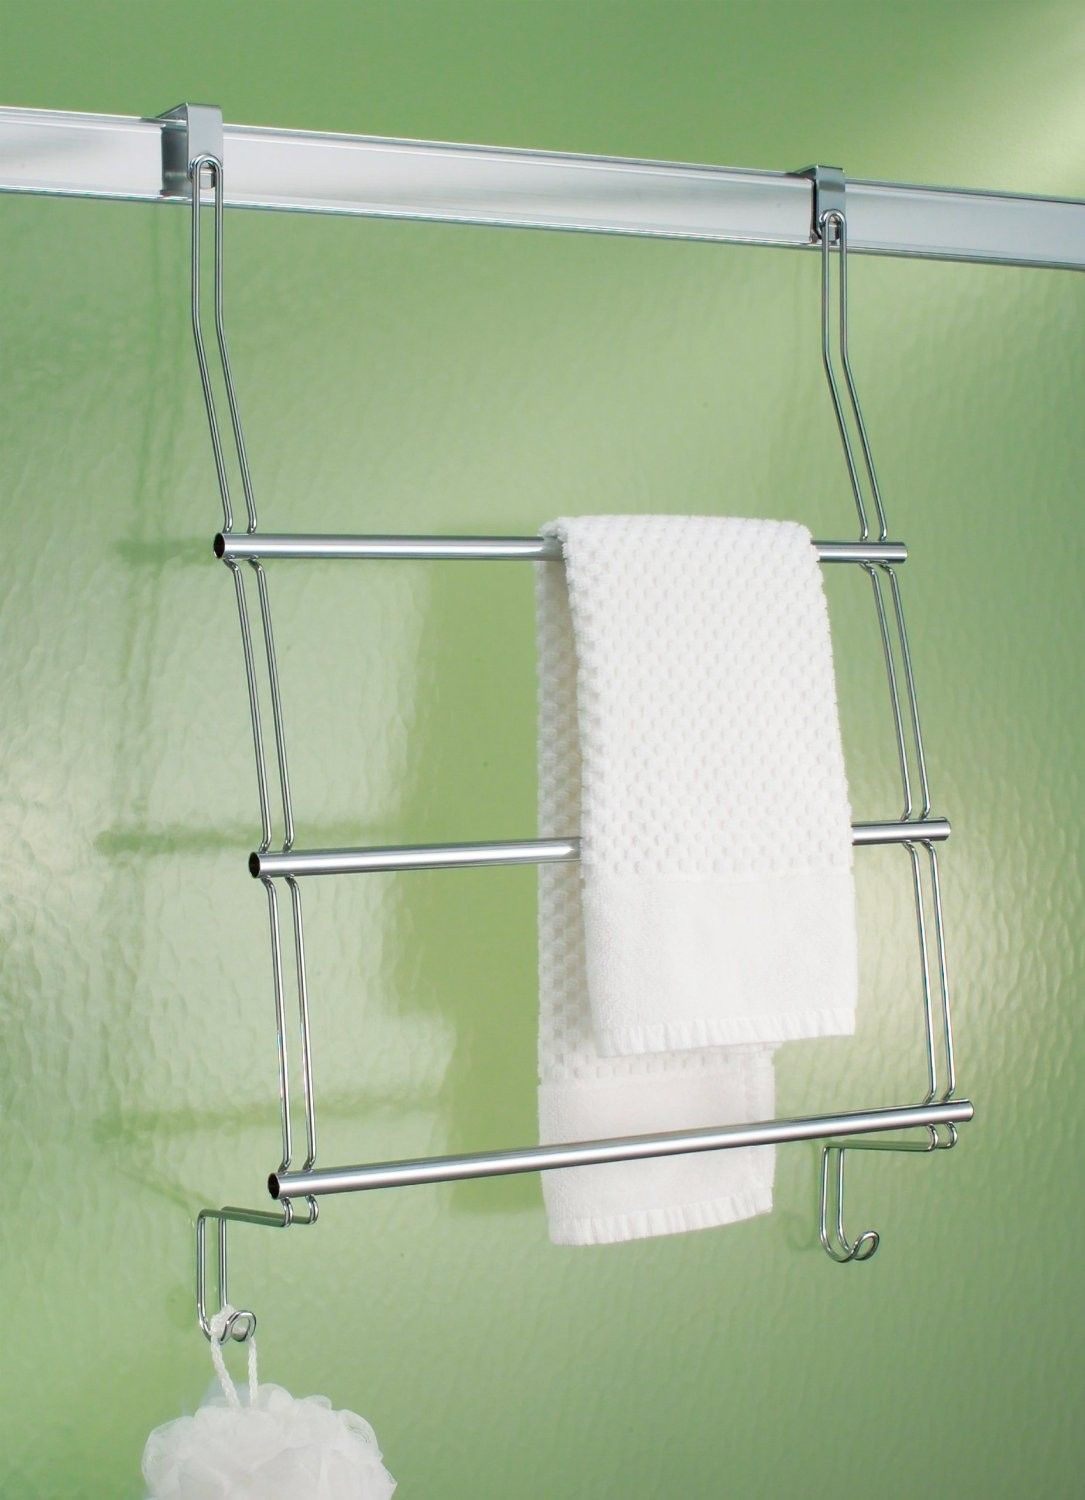 Interdesign 69110 Clico Over The Shower Door Towel Rack Keep Towels And Other Necessities Nearby With This Hanging Storage